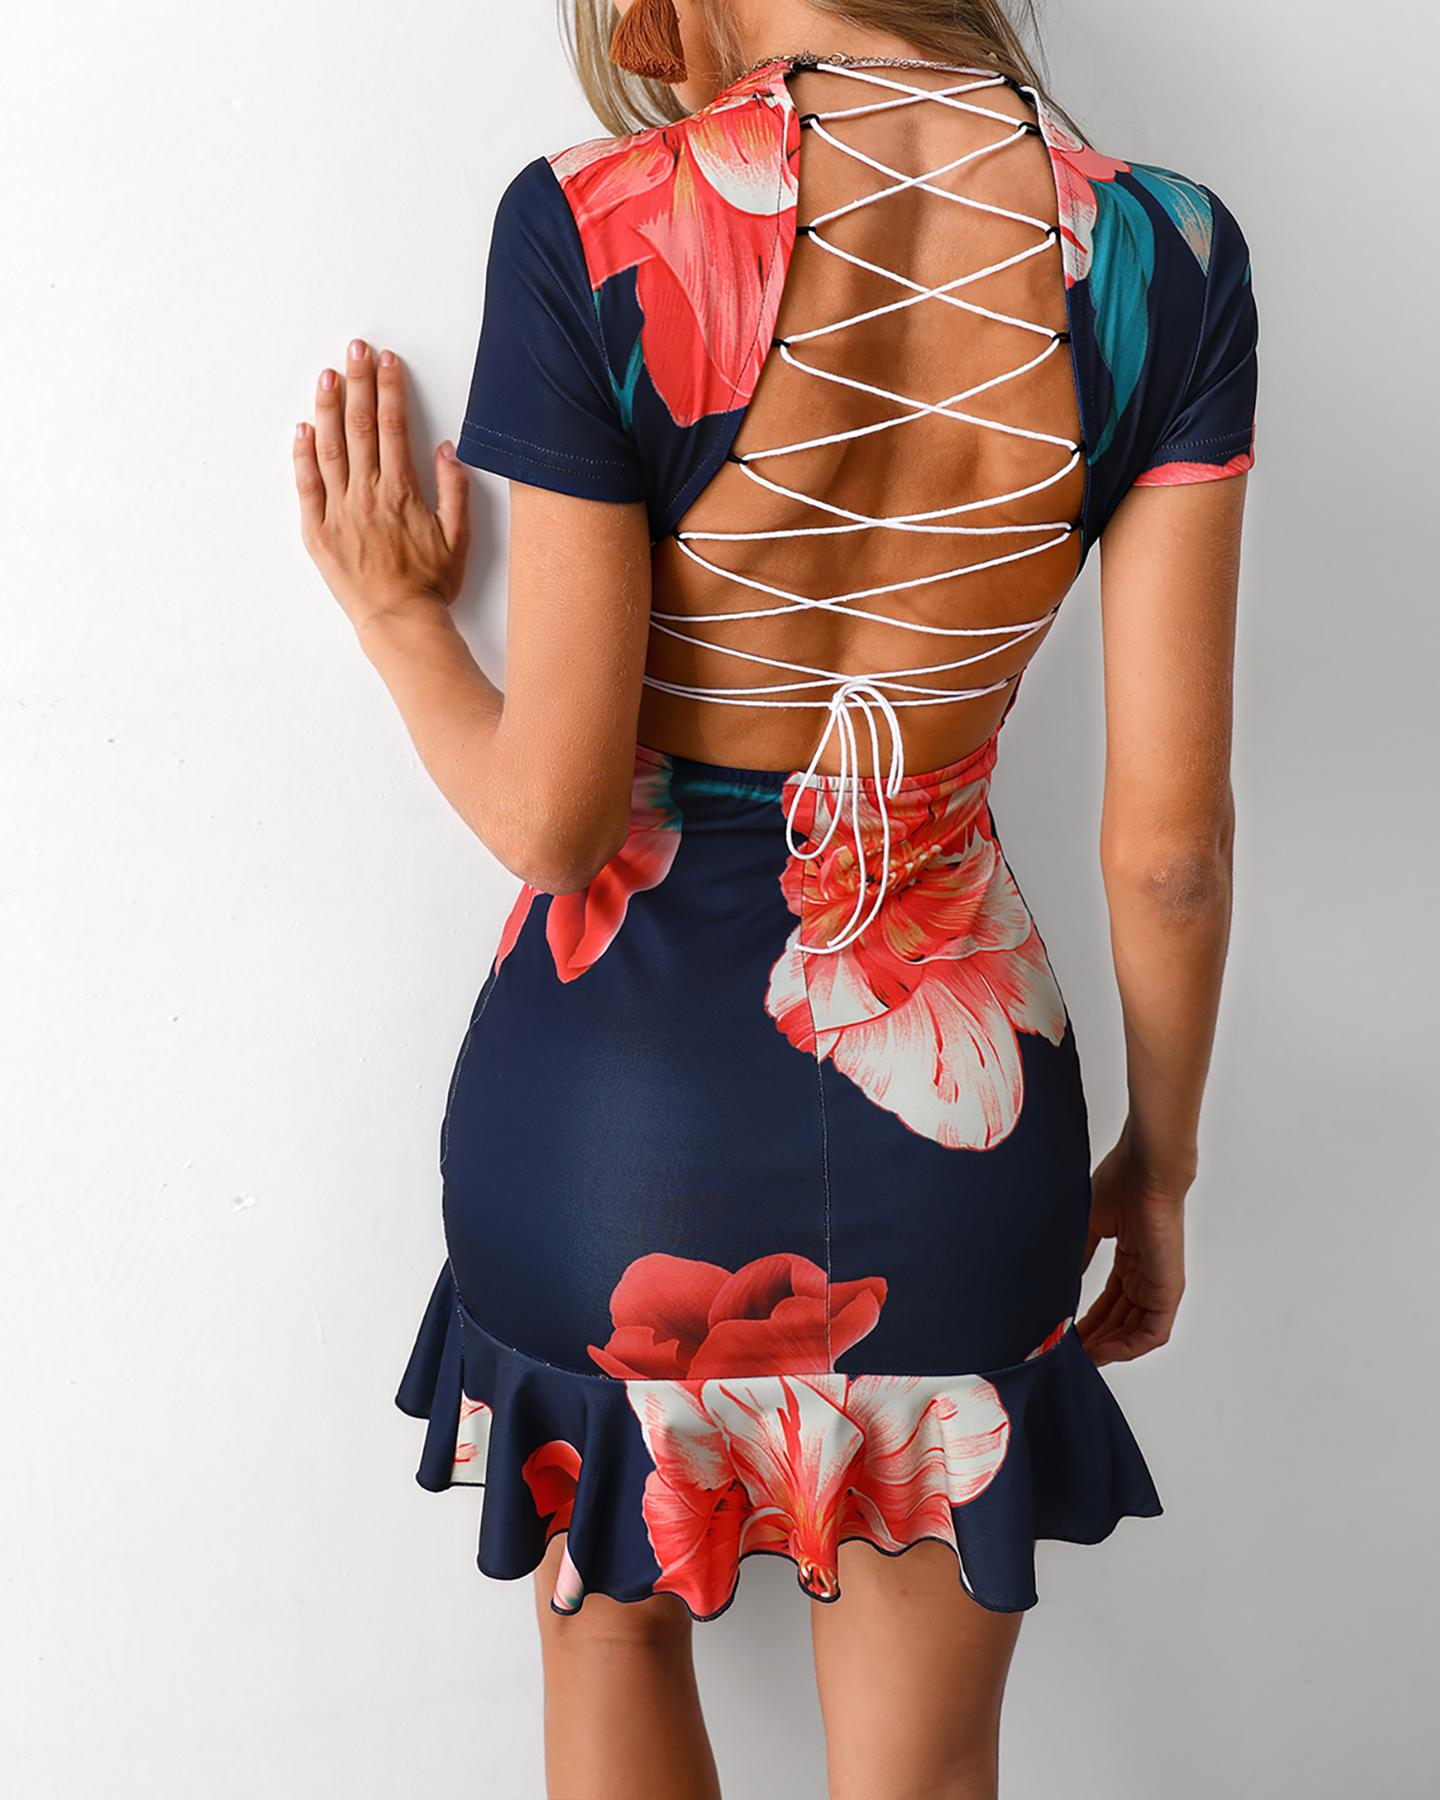 Floral Print Ruffles Lace-Up Back Bodycon Dress фото